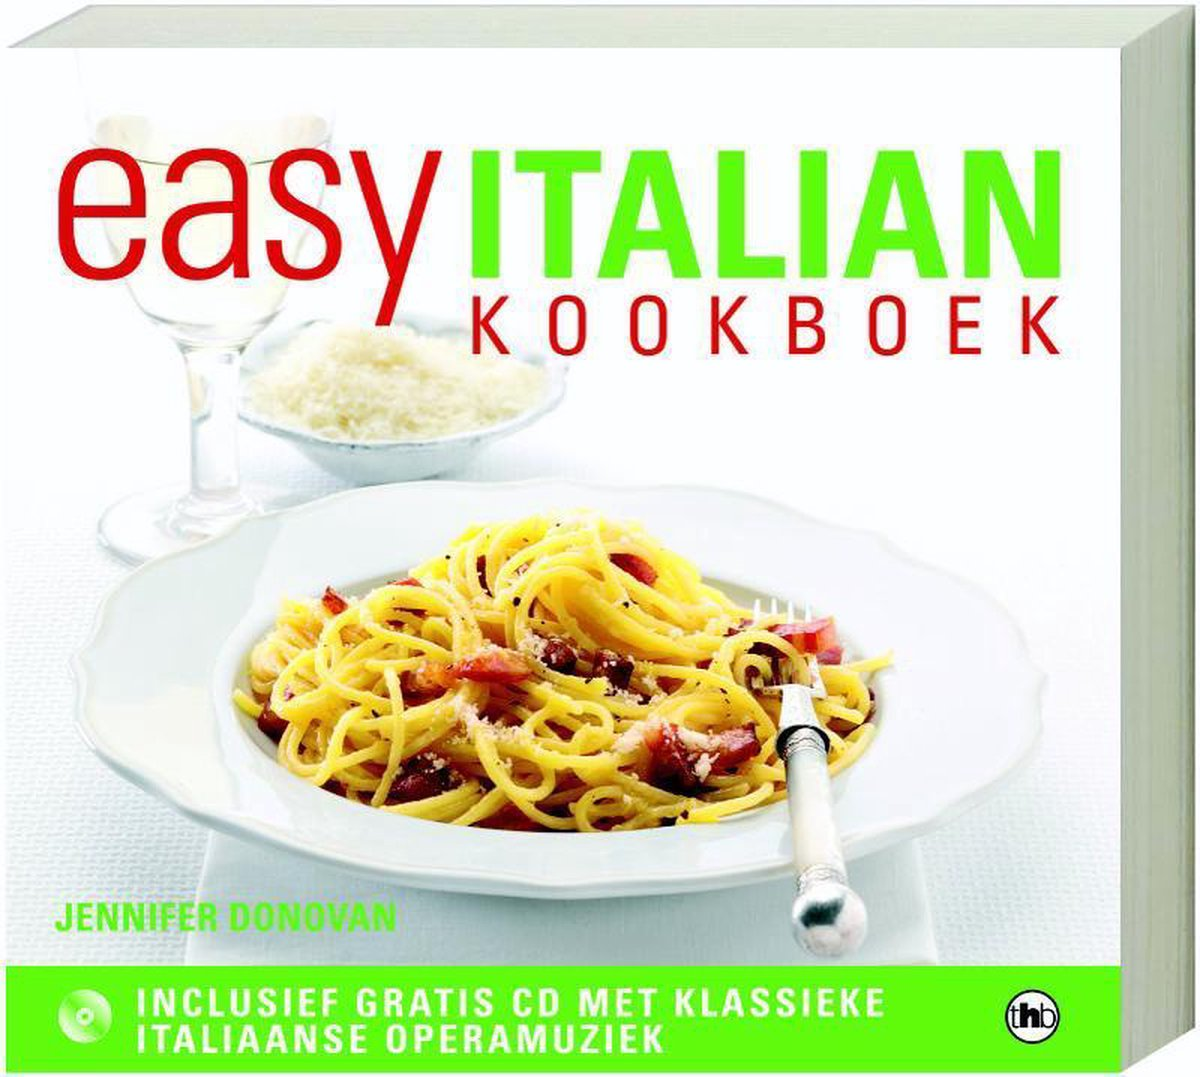 Easy Italian Kookboek